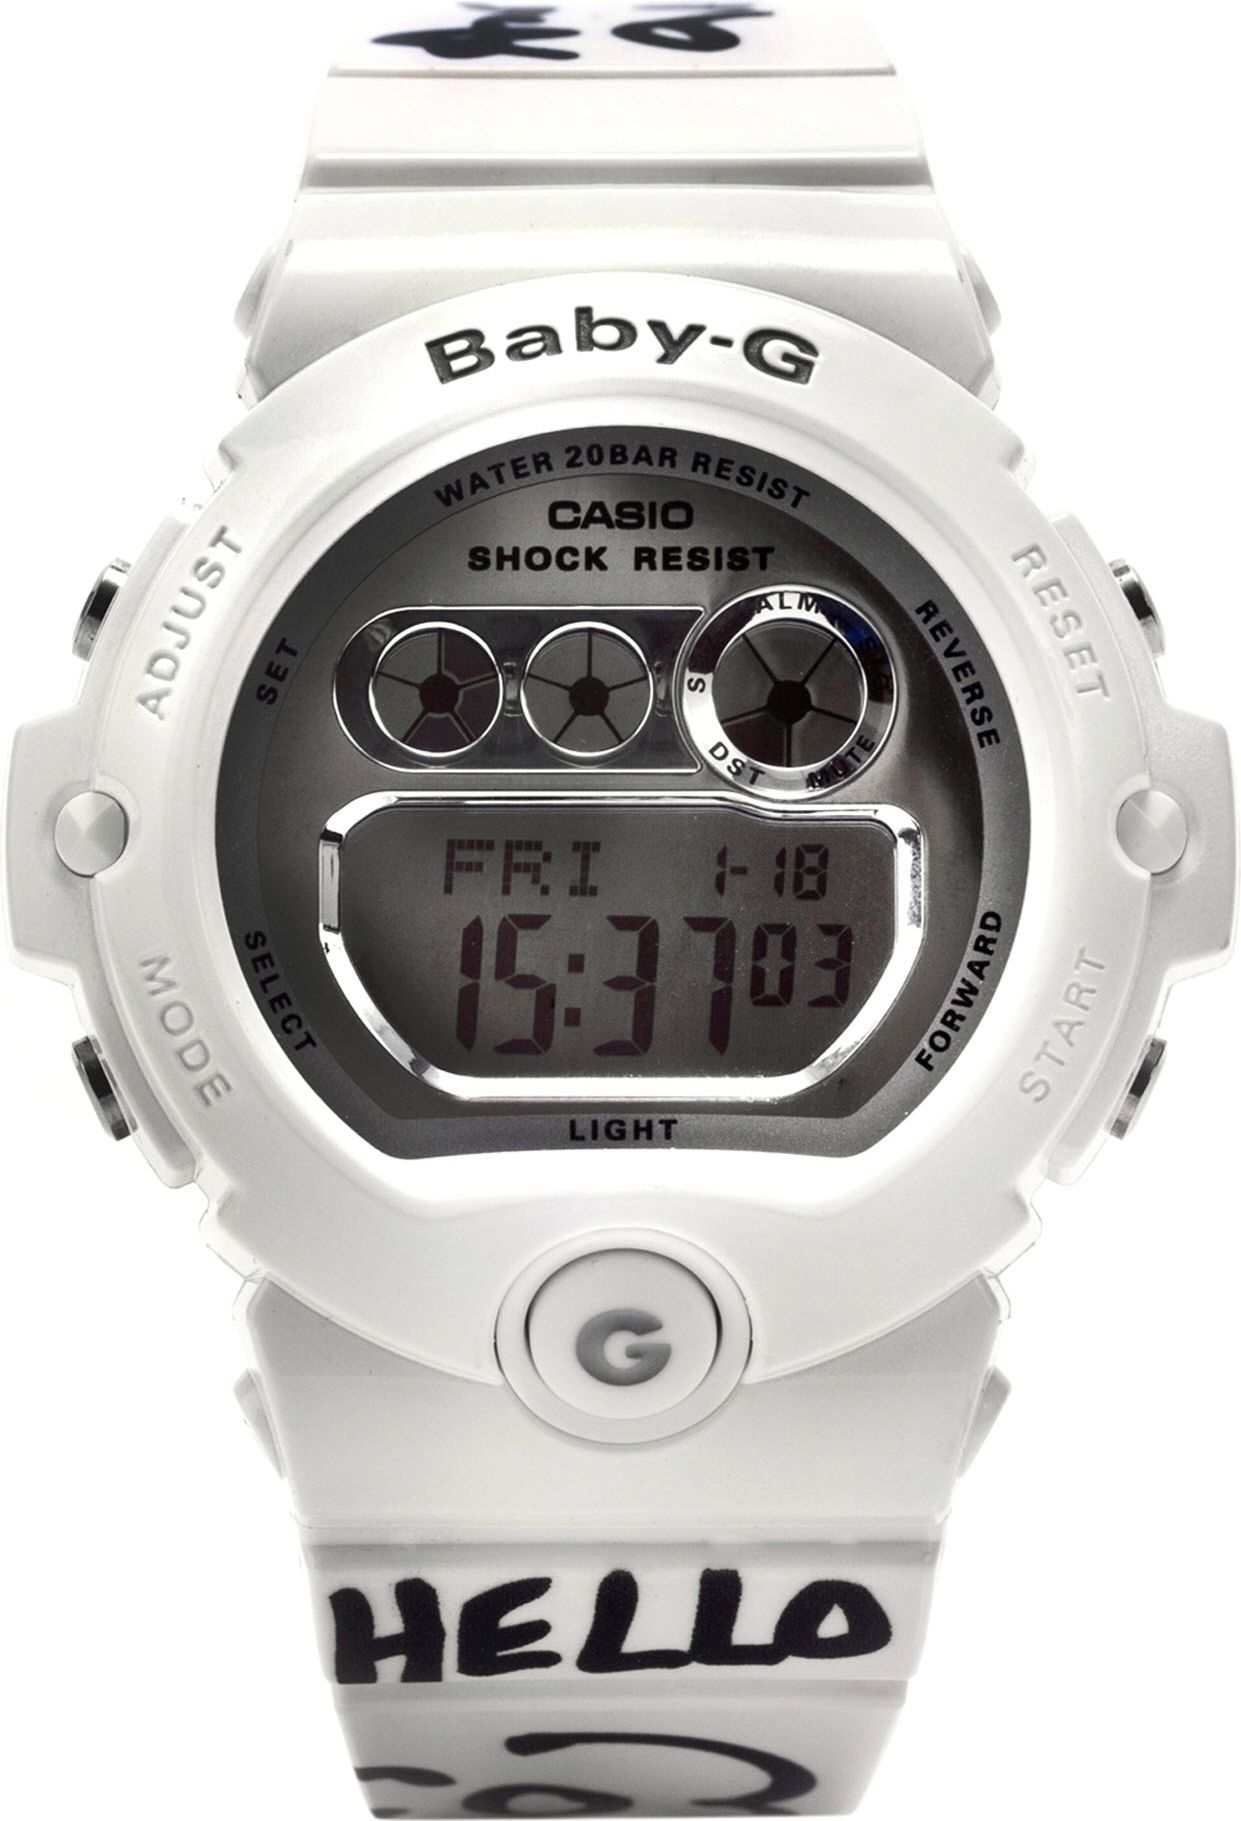 G Shock Antoni Alison Babyg Limitededition Digital Watch In White Casio Dw 6900nb 7dr For Men Lyst